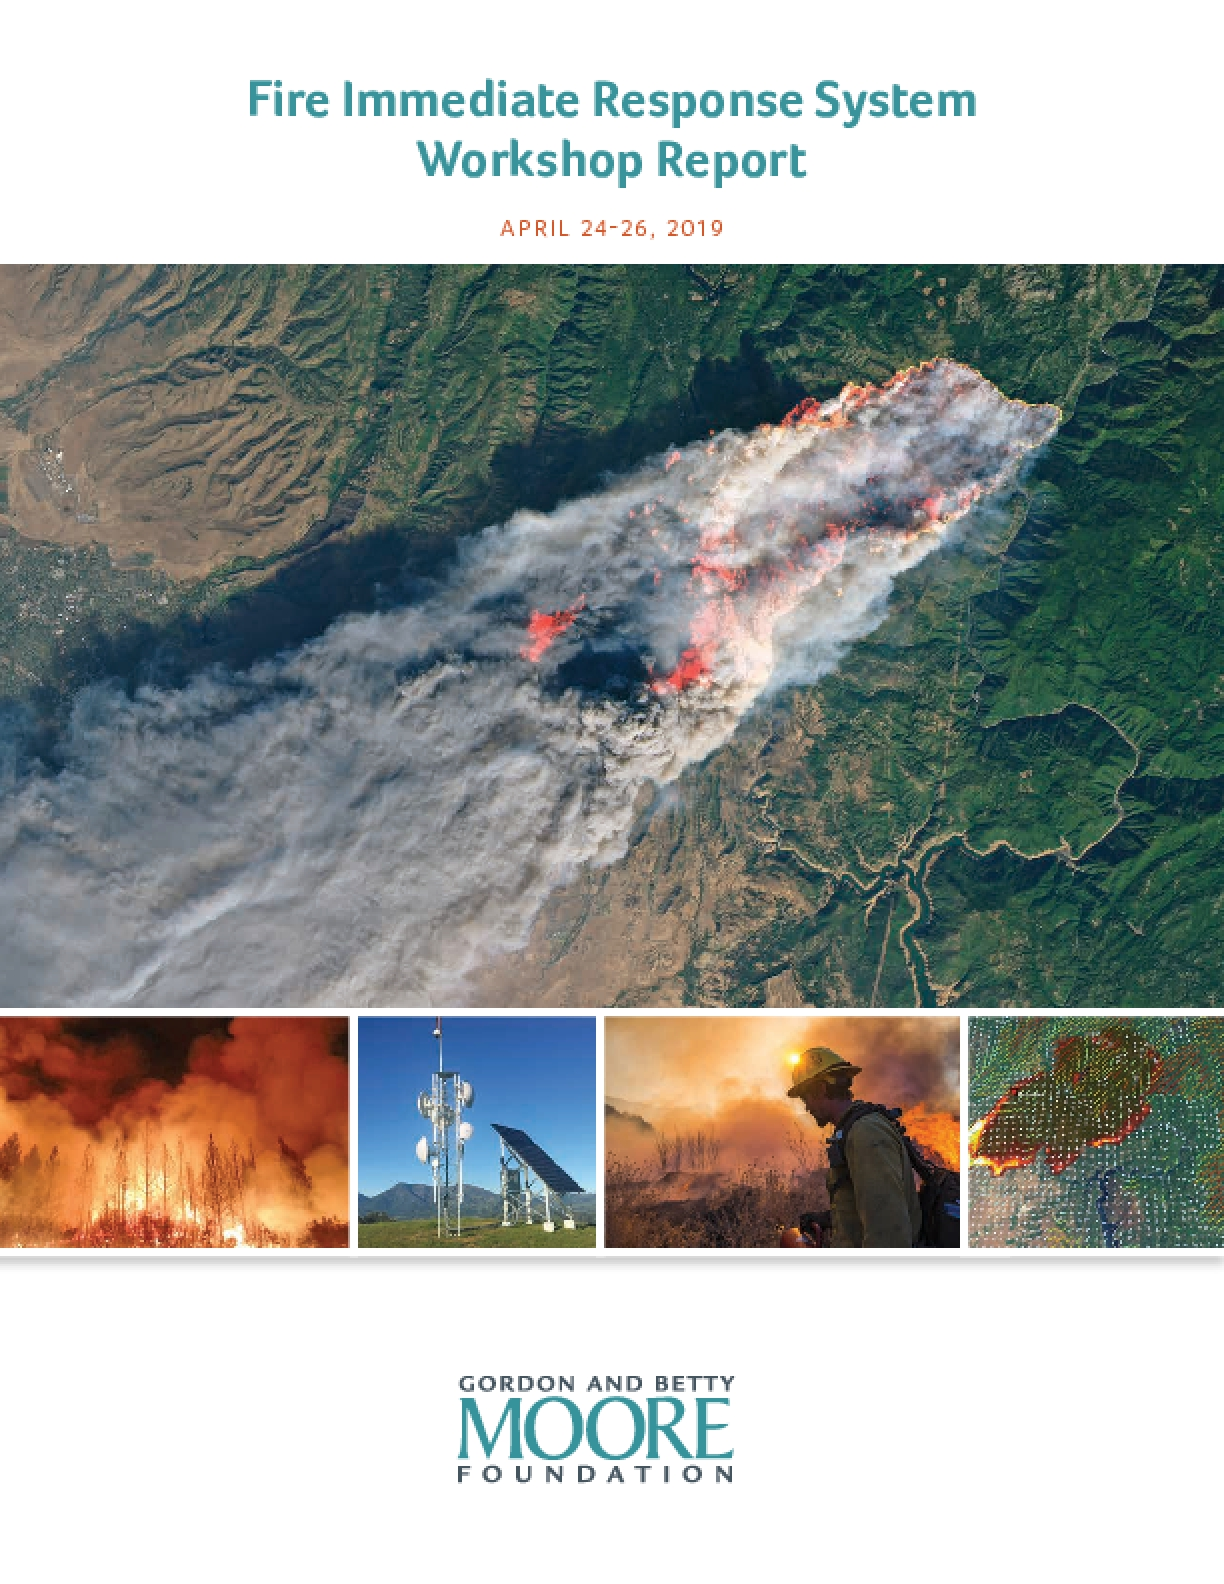 Fire Immediate Response System Workshop Report